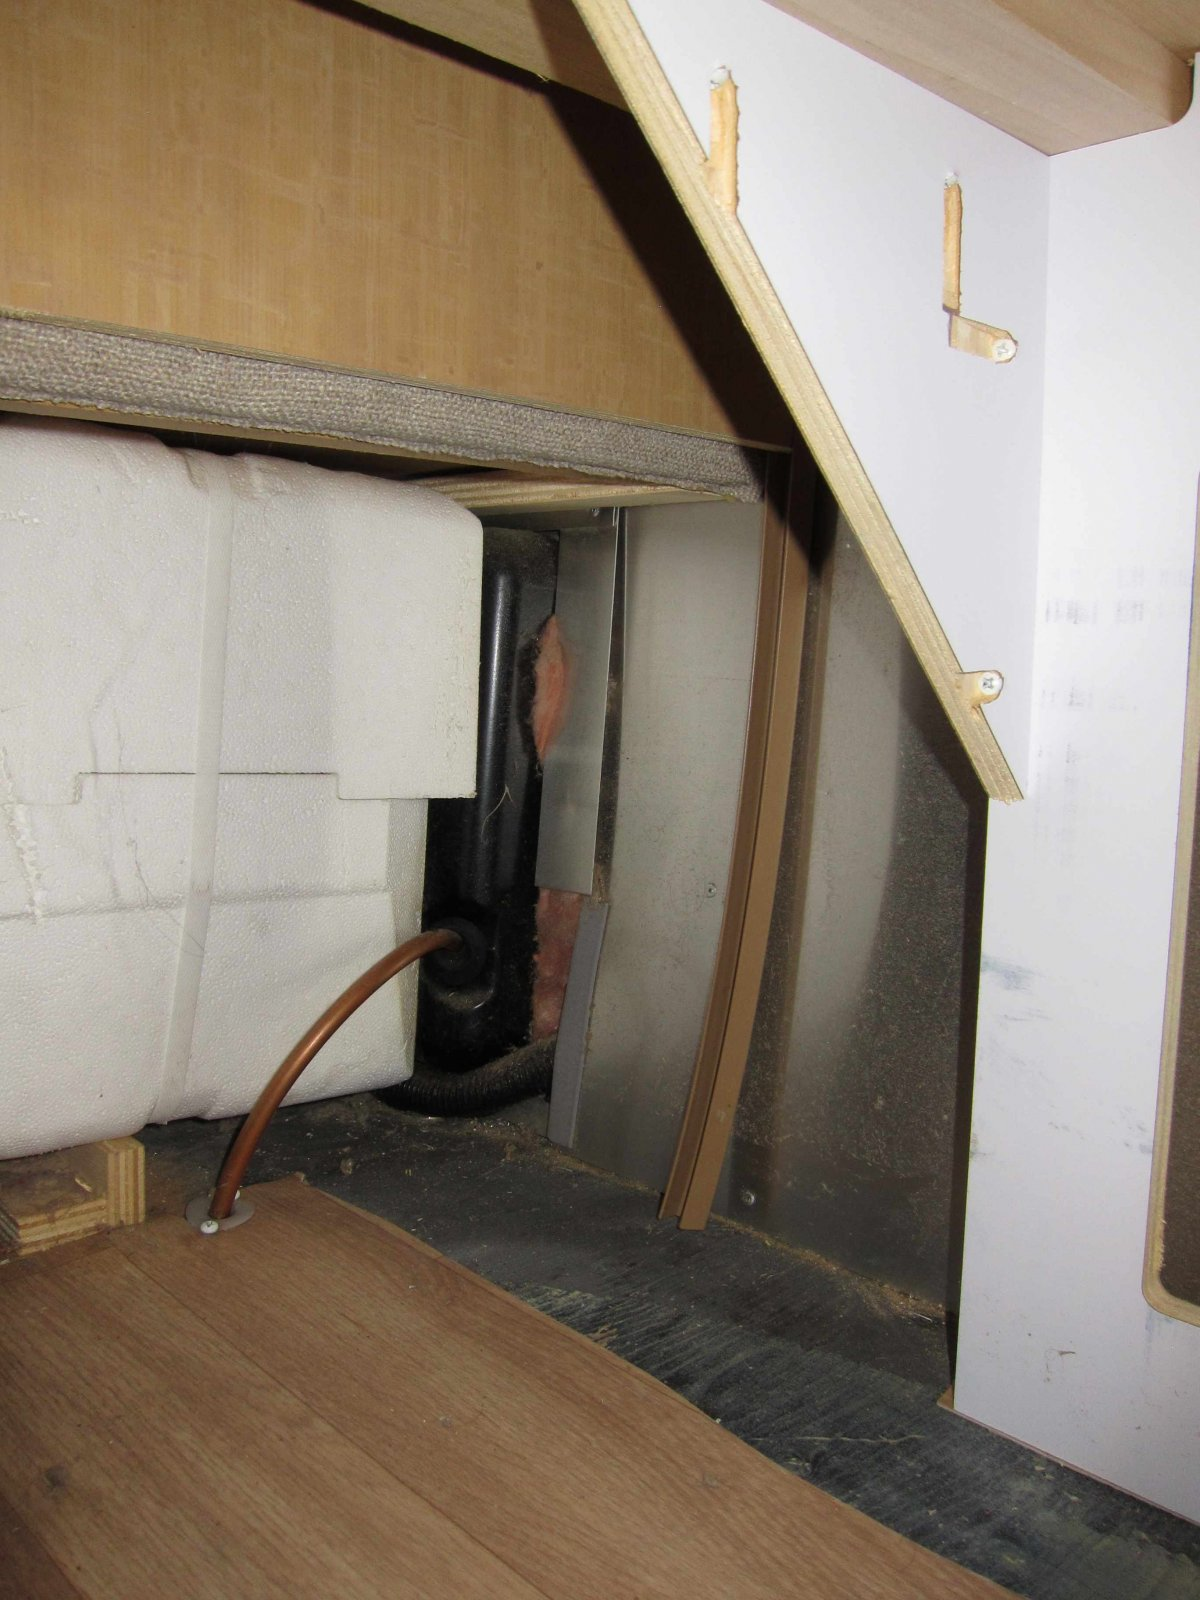 Click image for larger version  Name:under the bed looking at water heater.jpg Views:64 Size:247.8 KB ID:222096